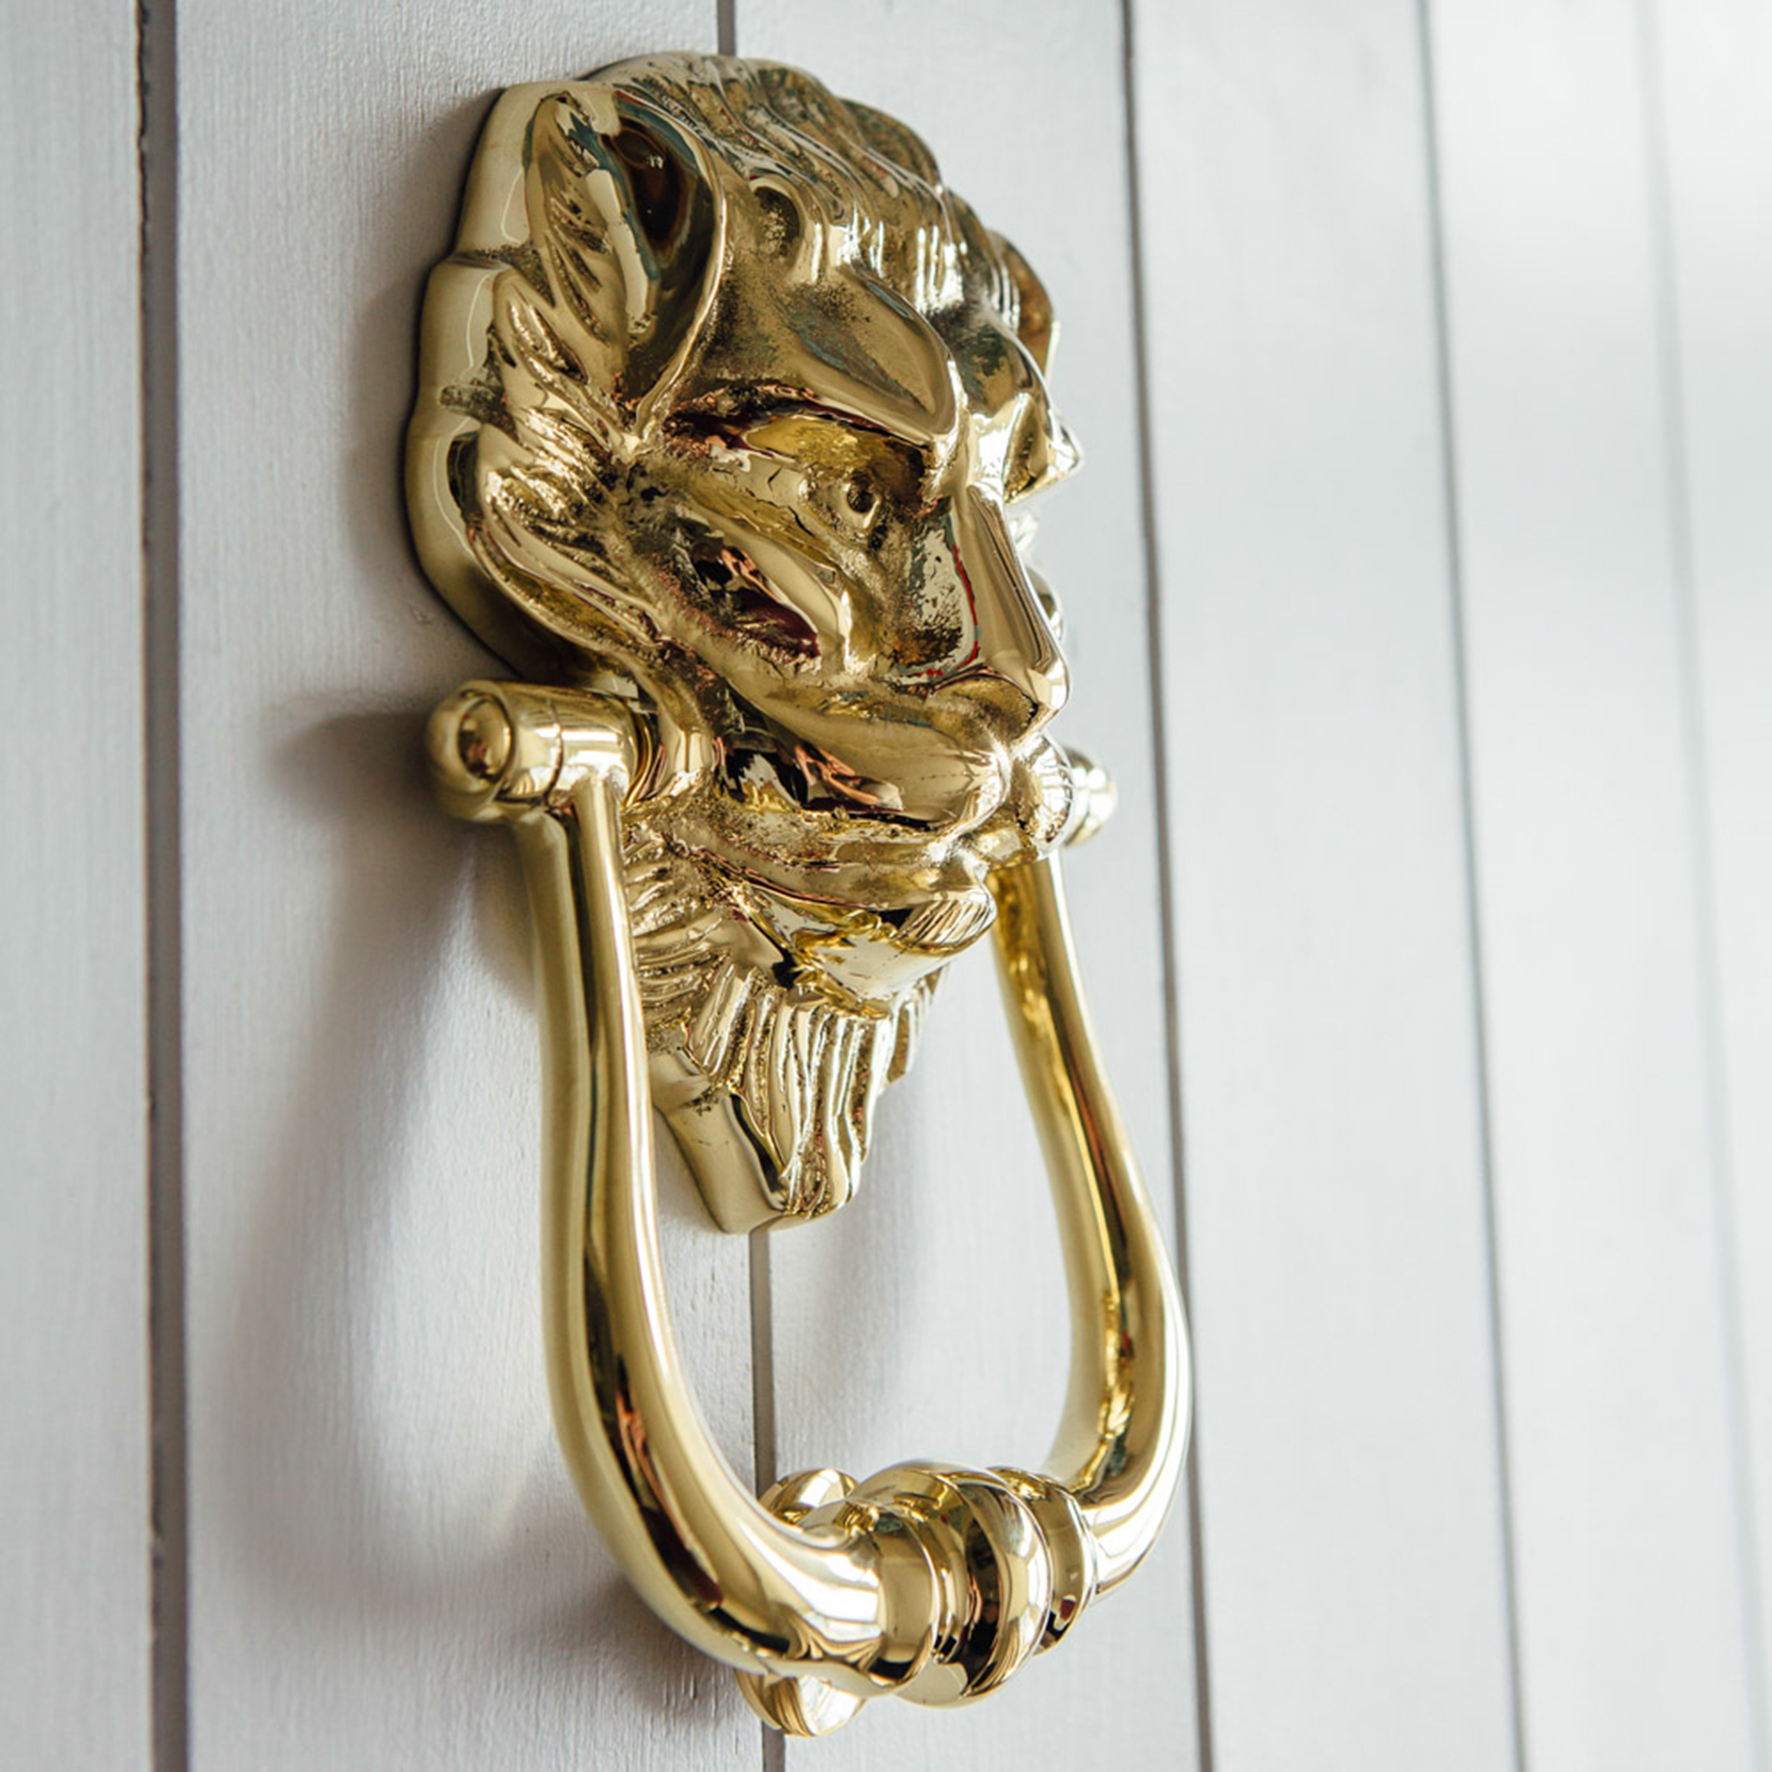 Empire lion's head door knocker, brass, £66.50, Grace & Glory Home (Grace & Glory Home/PA)